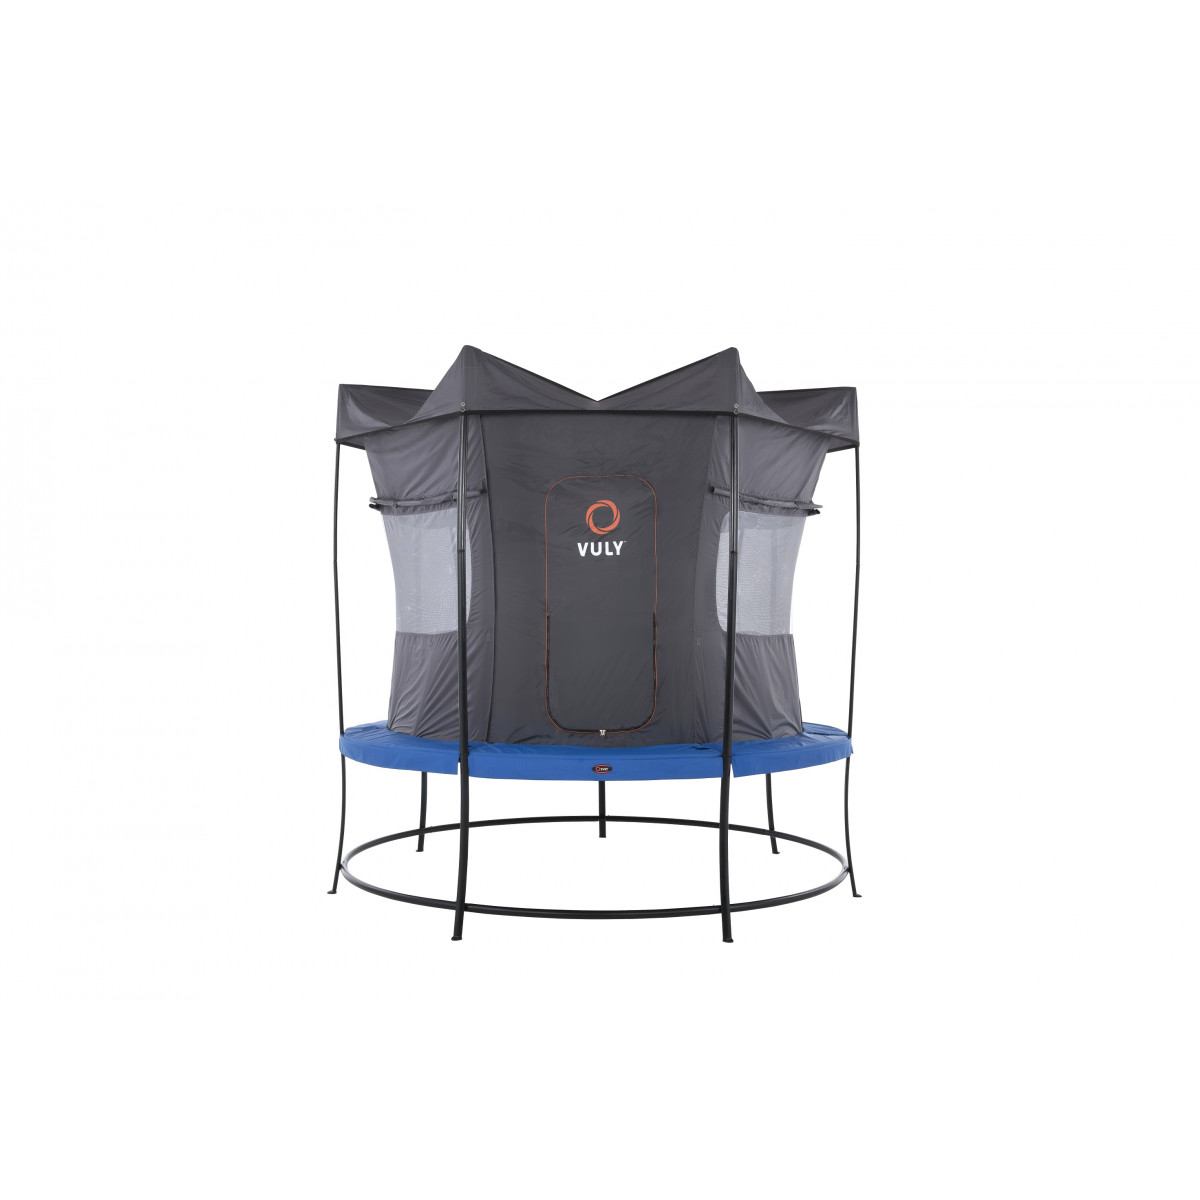 Vuly2 10ft Trampoline With Net & Tent